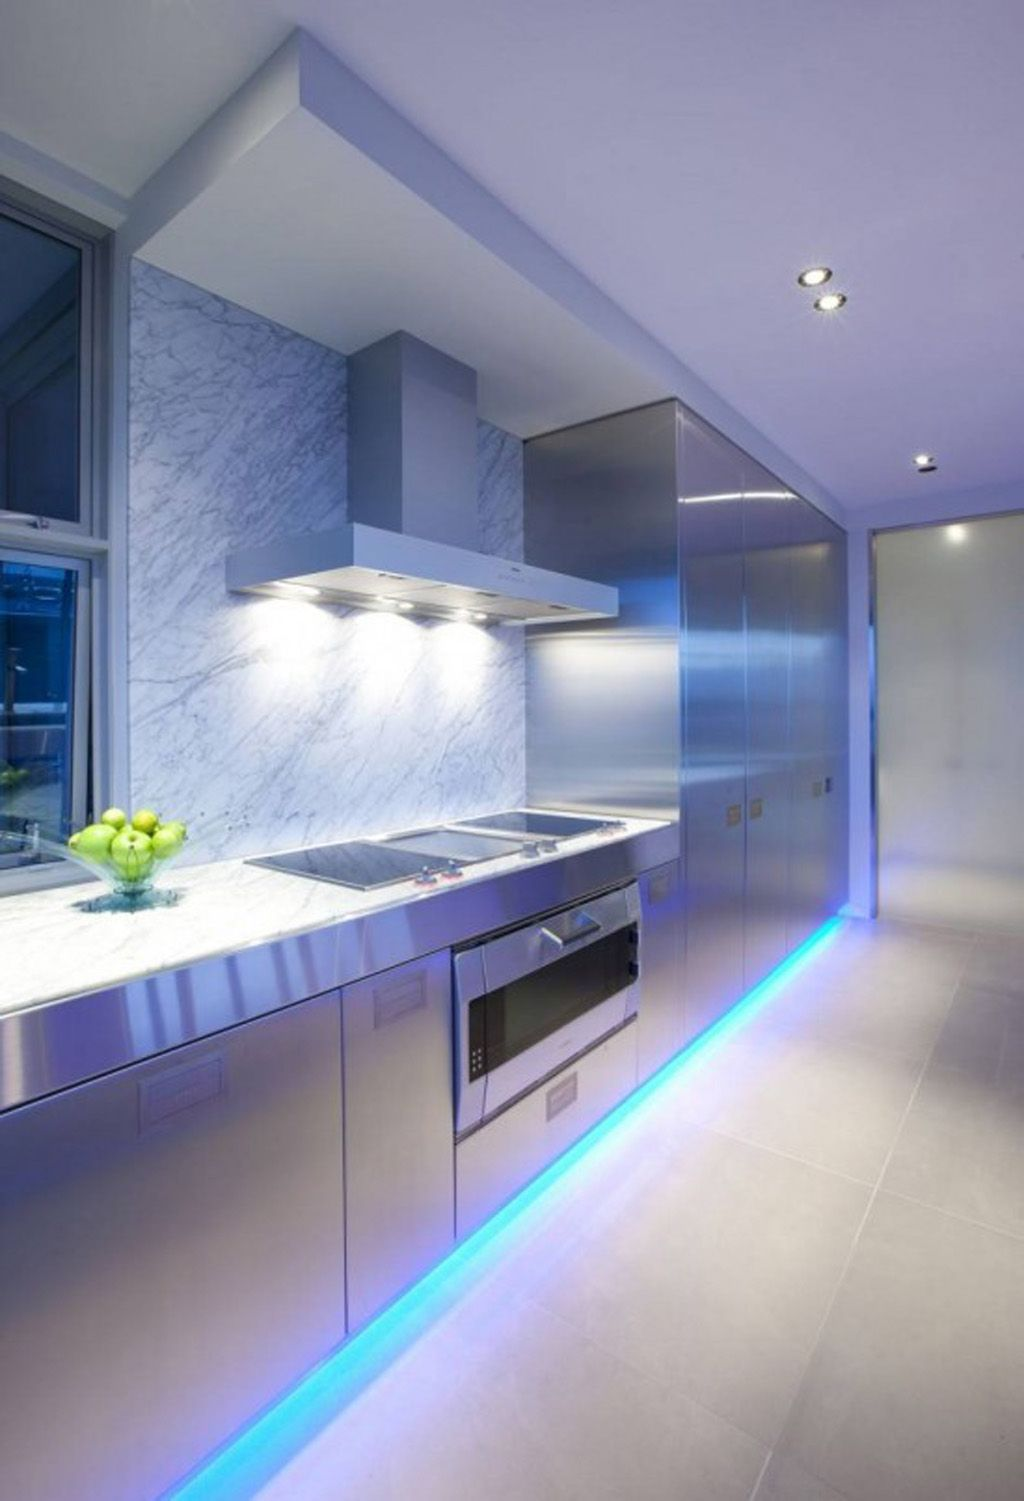 Kitchen Lighting Led 21 stunning kitchen ceiling design ideas led kitchen lighting ultra modern kitchen design with led lighting fixtures modern kitchen workwithnaturefo